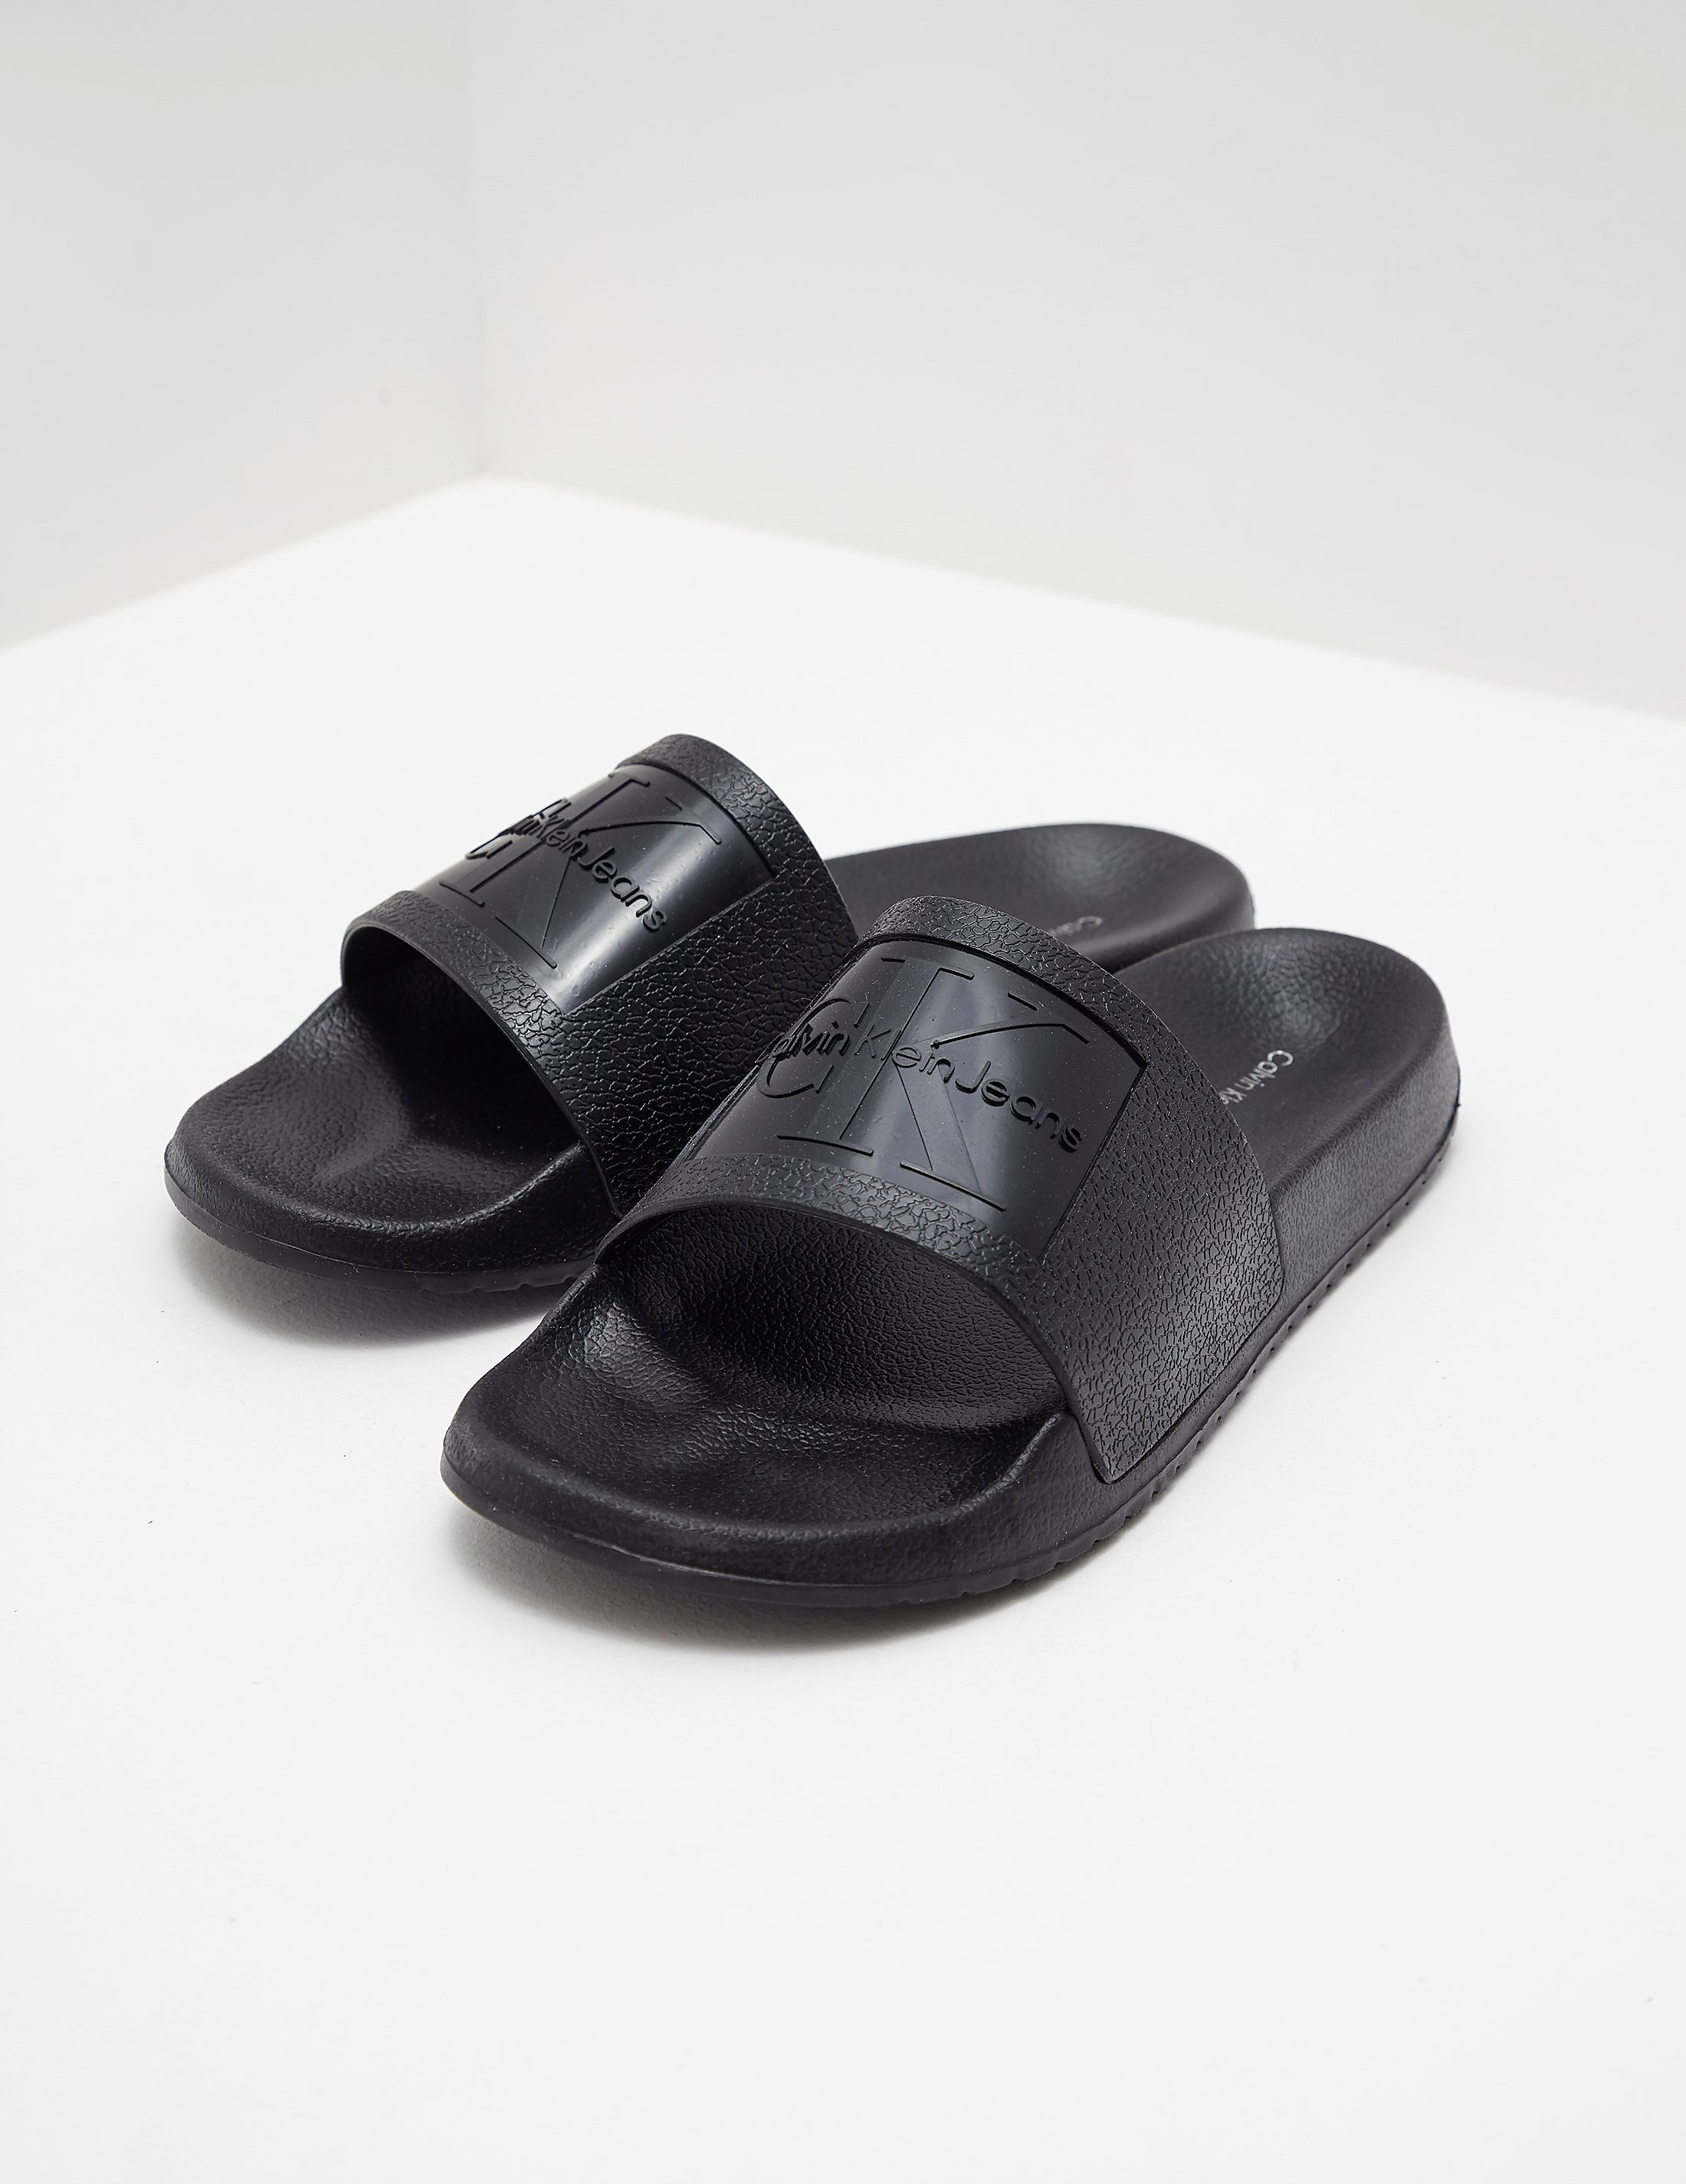 Calvin Klein Christie Slides Women's